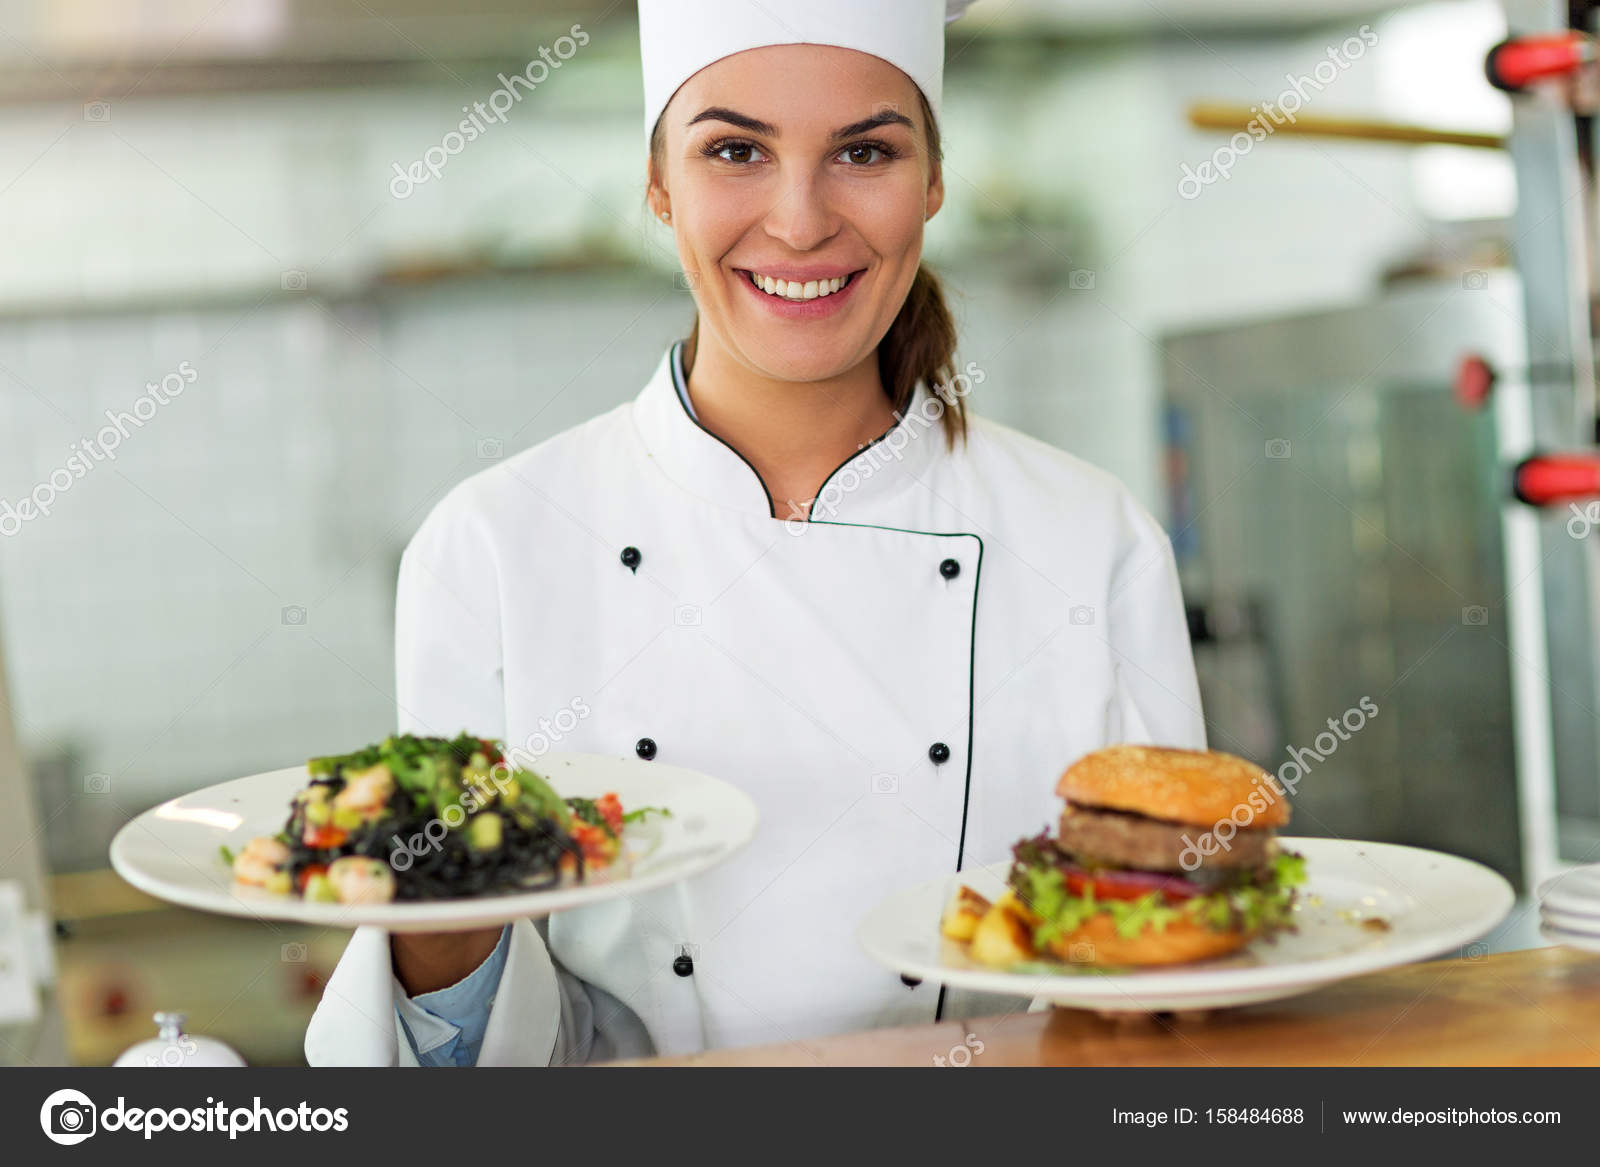 Female chef in kitchen — Stock Photo © pikselstock #158484688